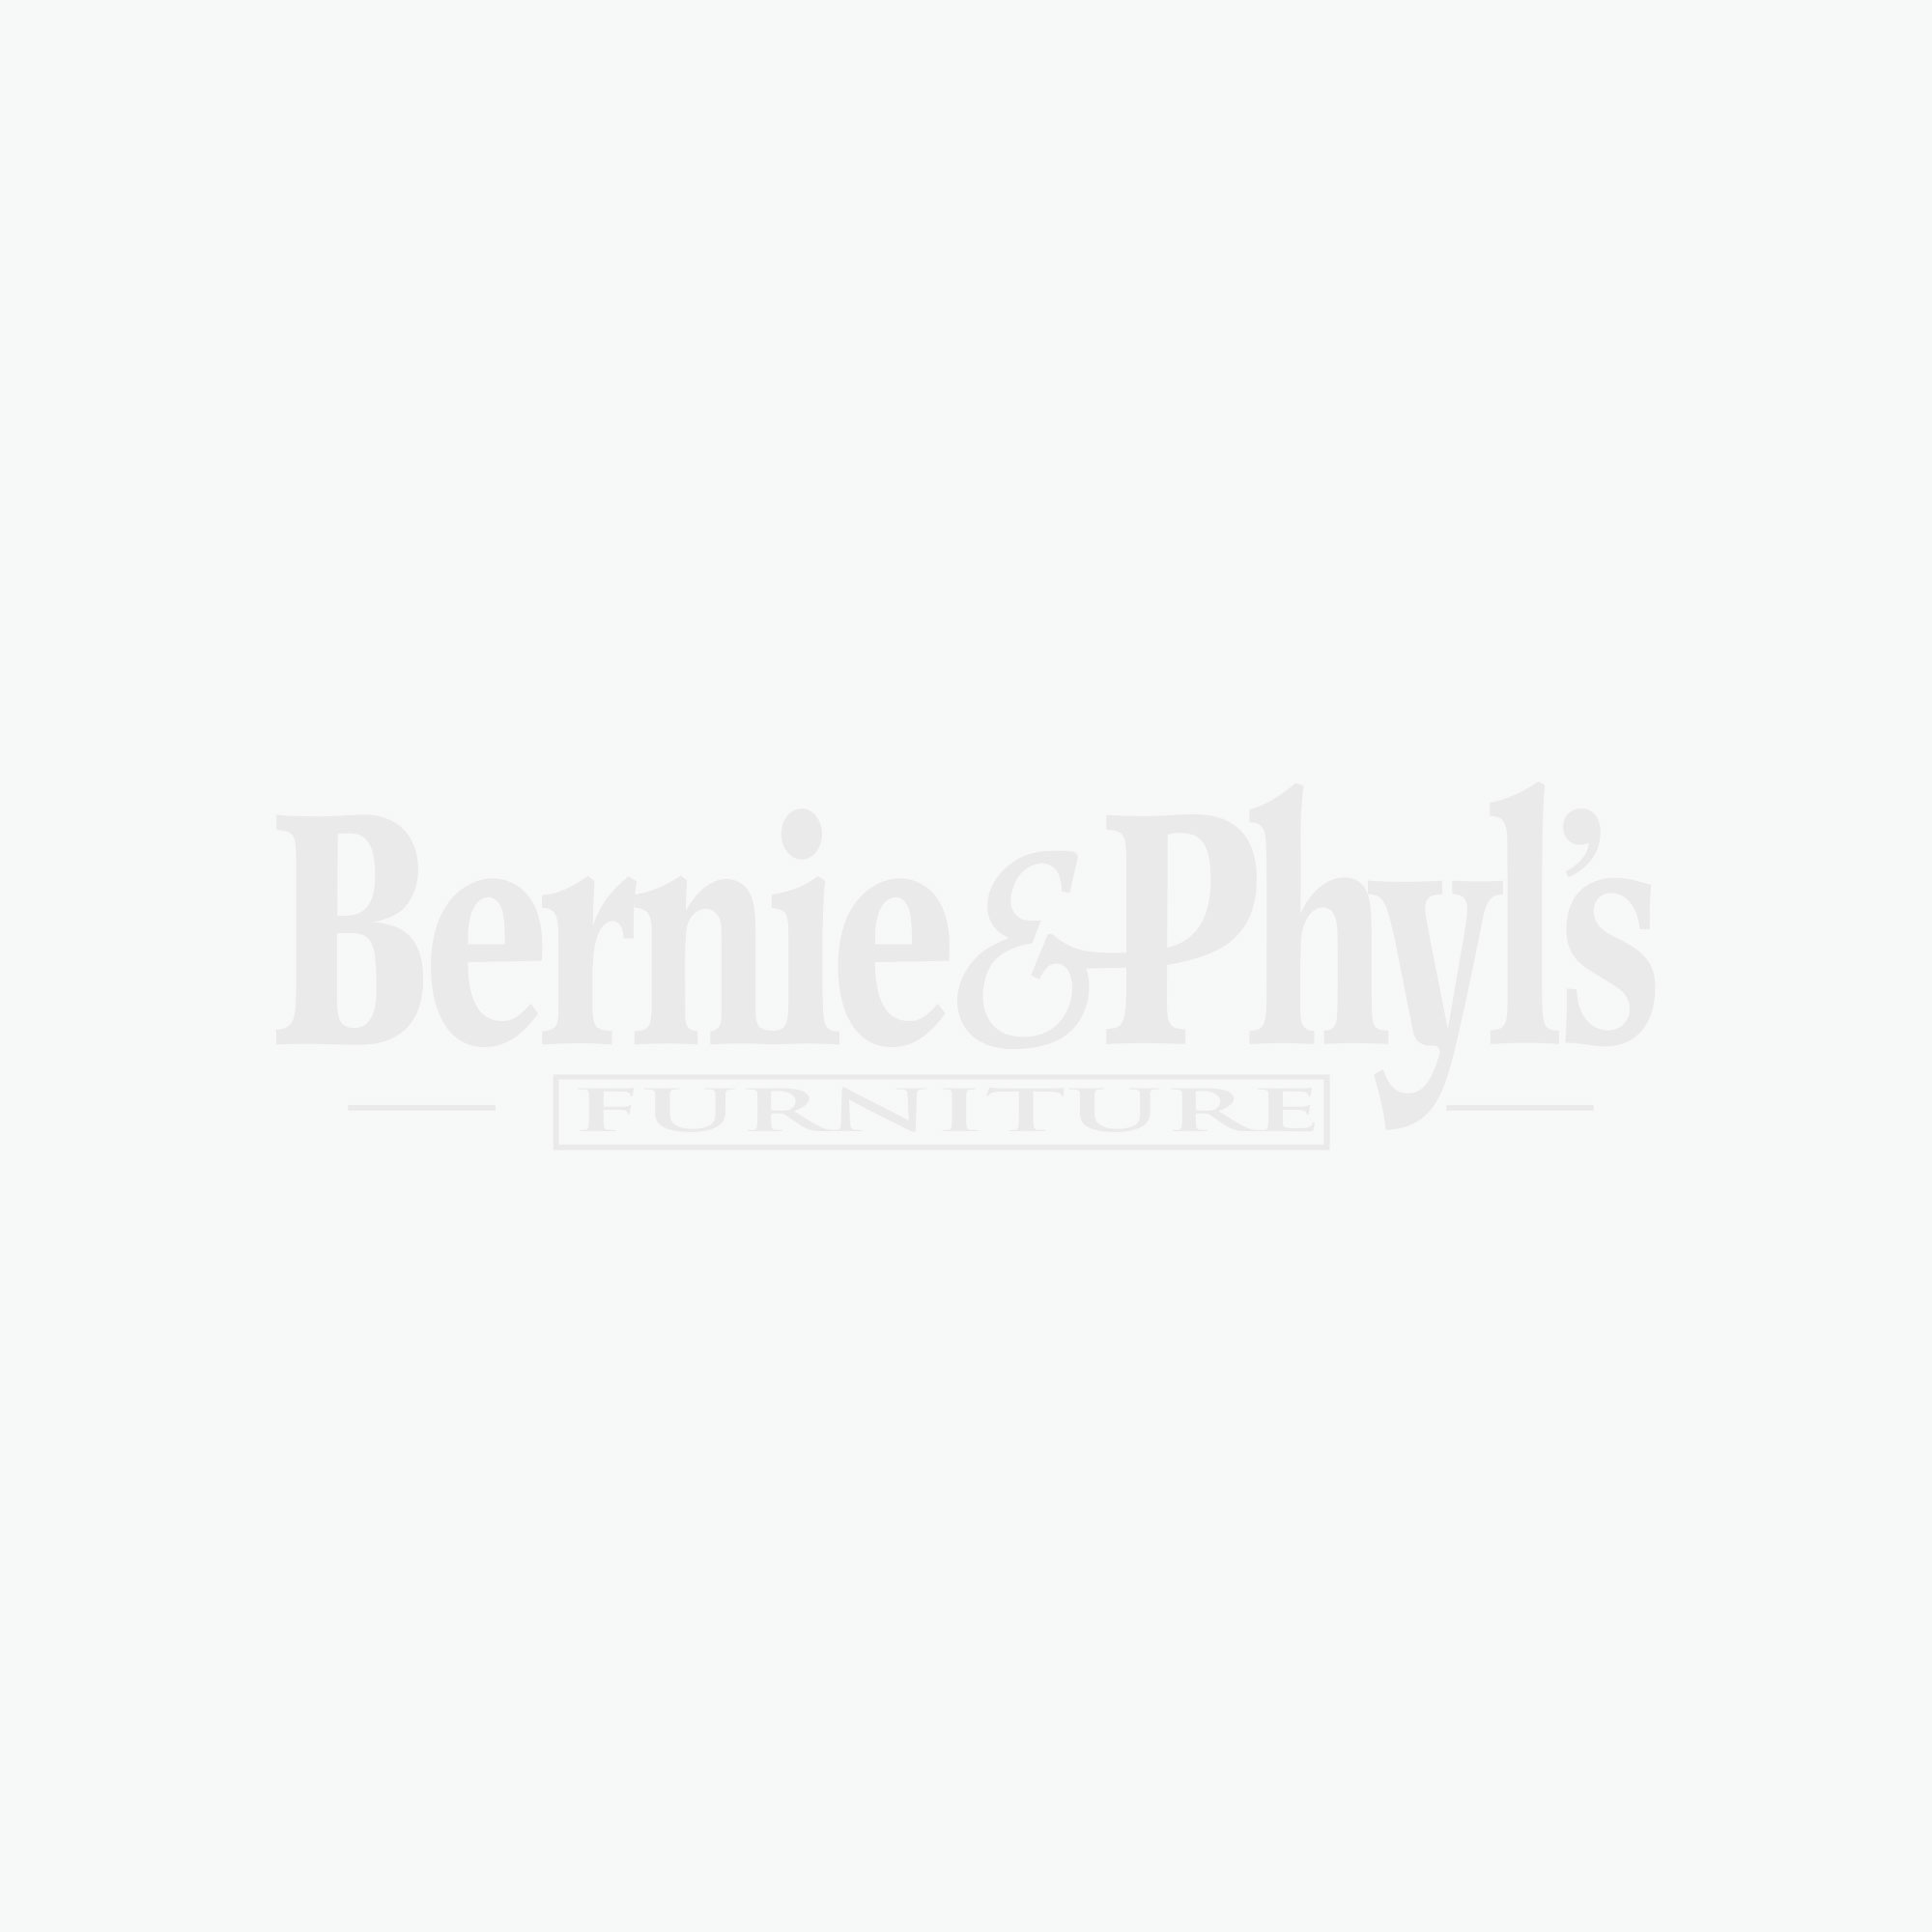 Novato Sofa Bernie Phyl S Furniture